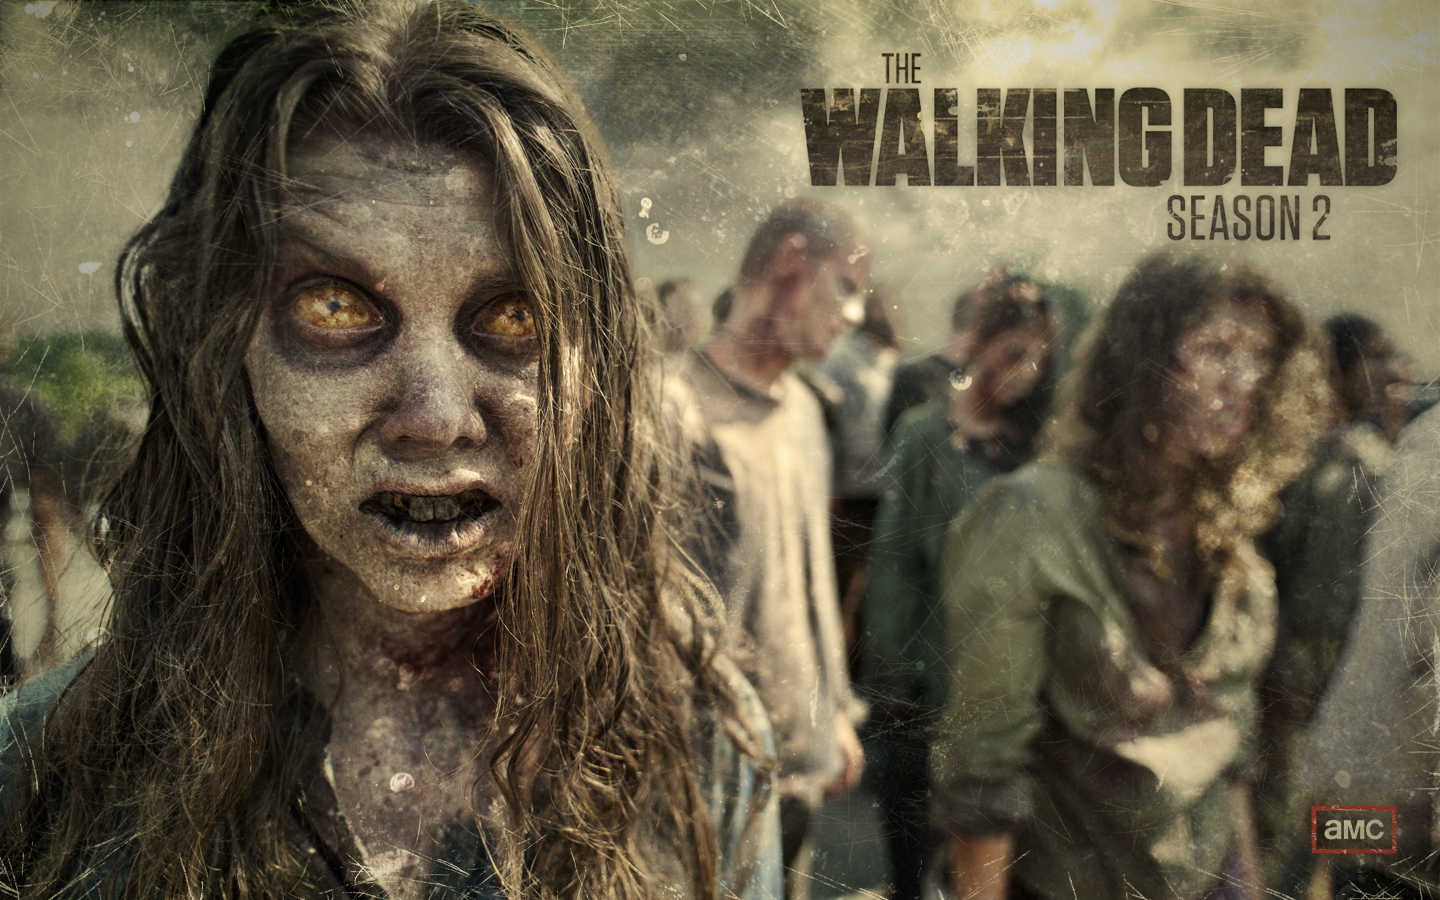 Capa do The Walking Dead Episódio 13 Temporada 4 Dual Áudio + Legendado Portuguêsseriados